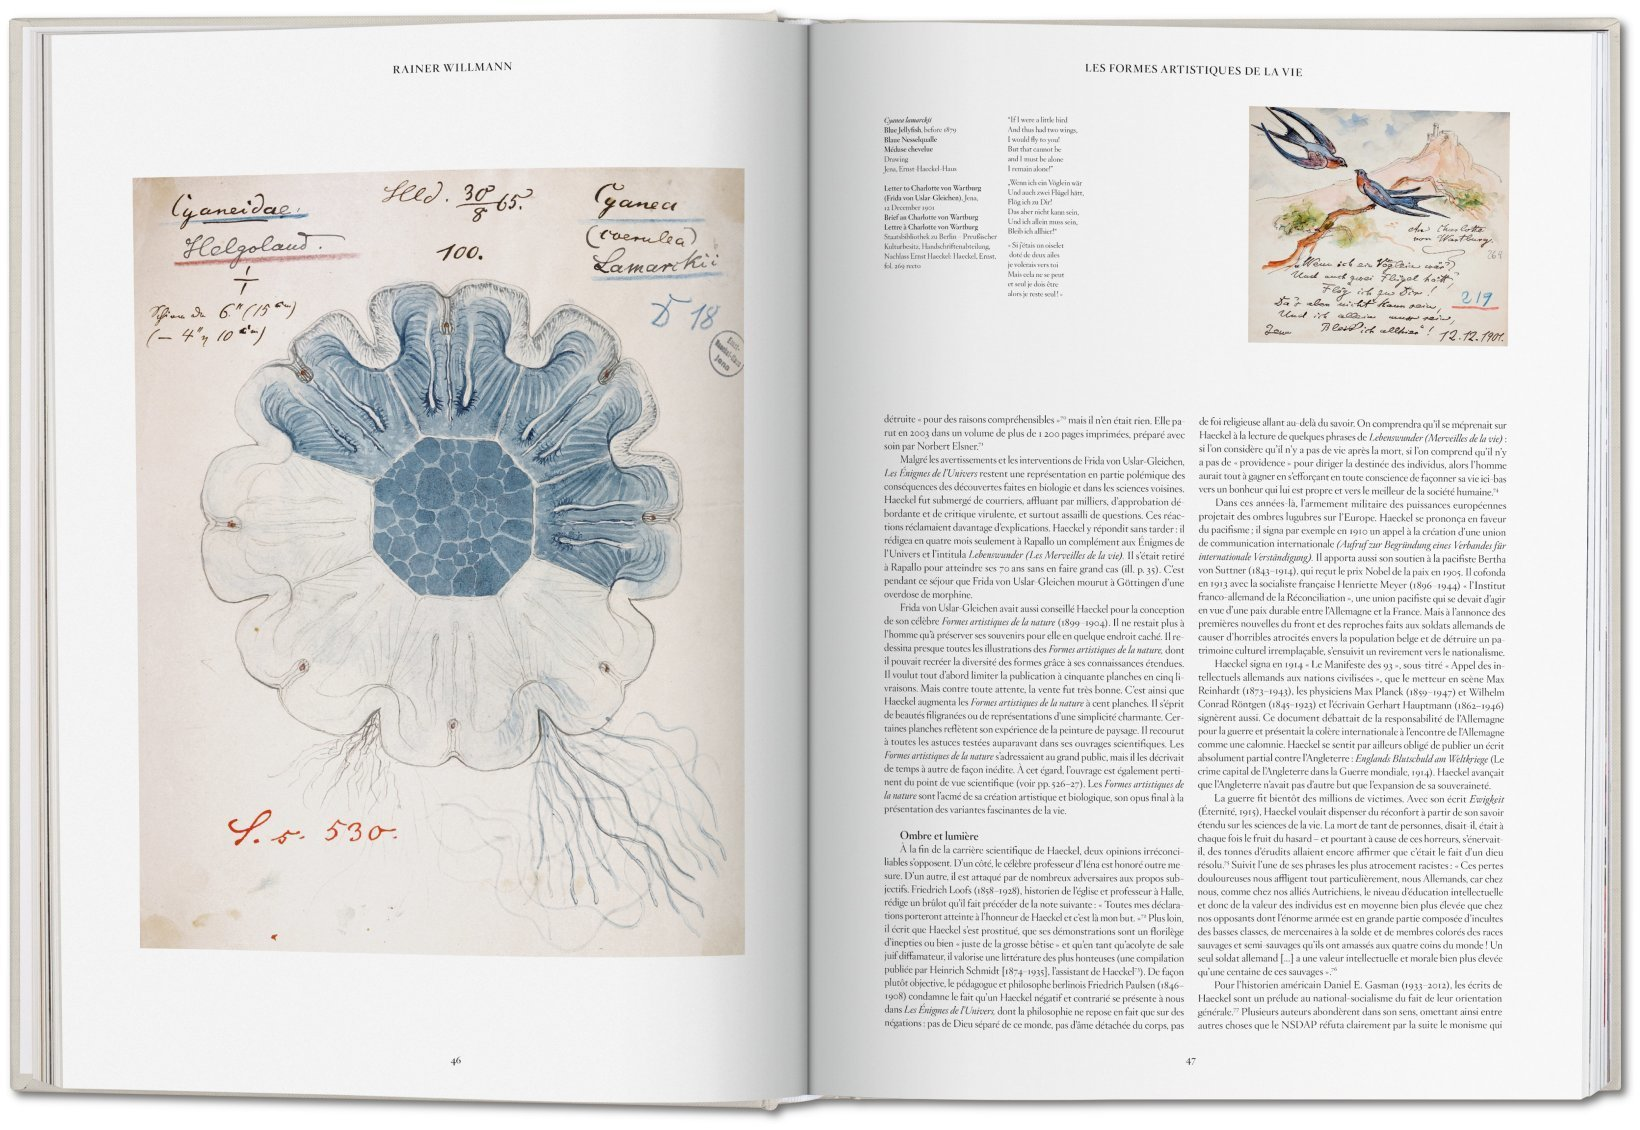 The Art and Science of Ernst Haeckel 4